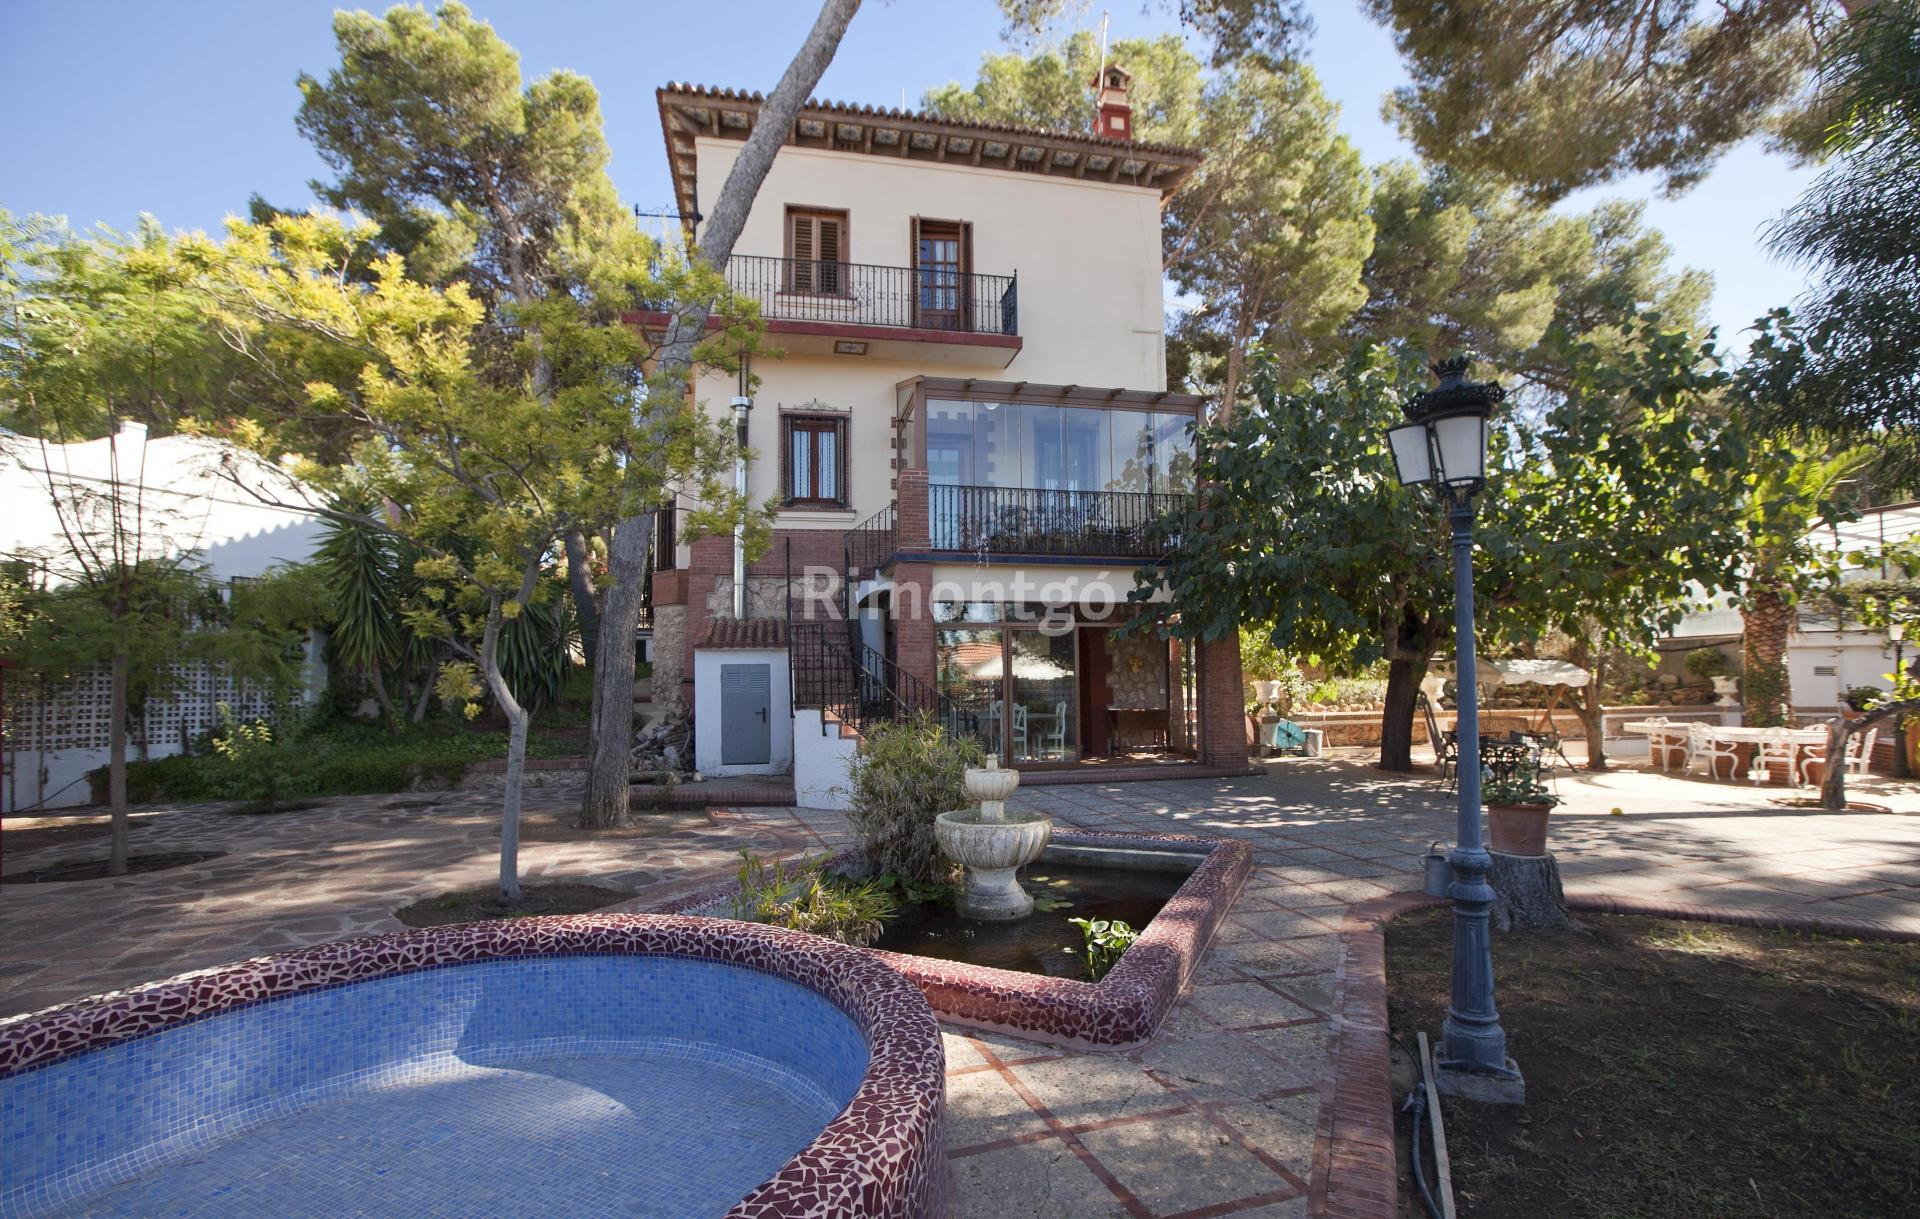 Luxury villa for sale in La Cañada, Valencia